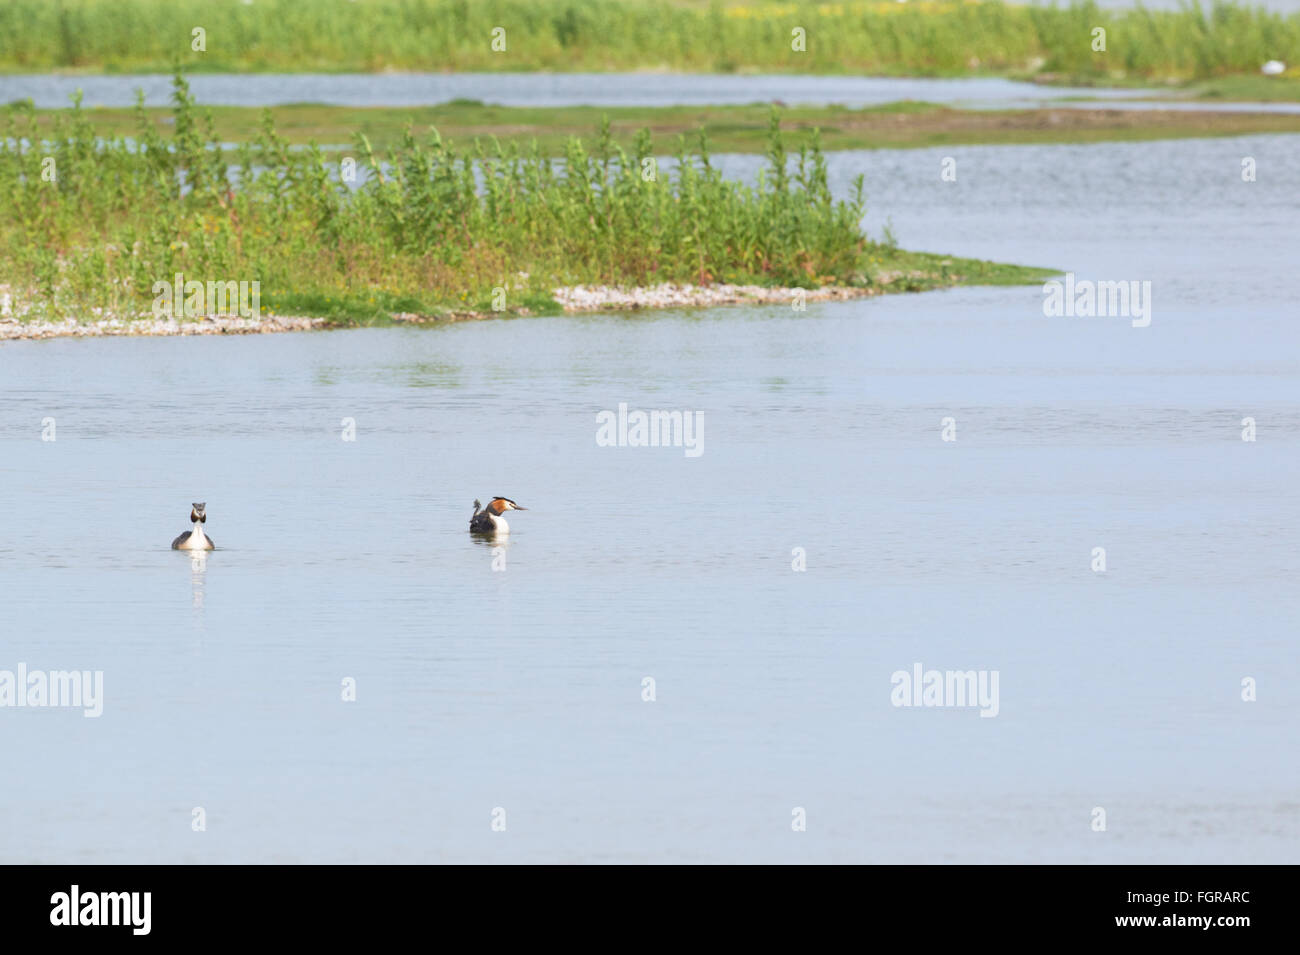 Pair Great crested Grebes swimming in water - Stock Image